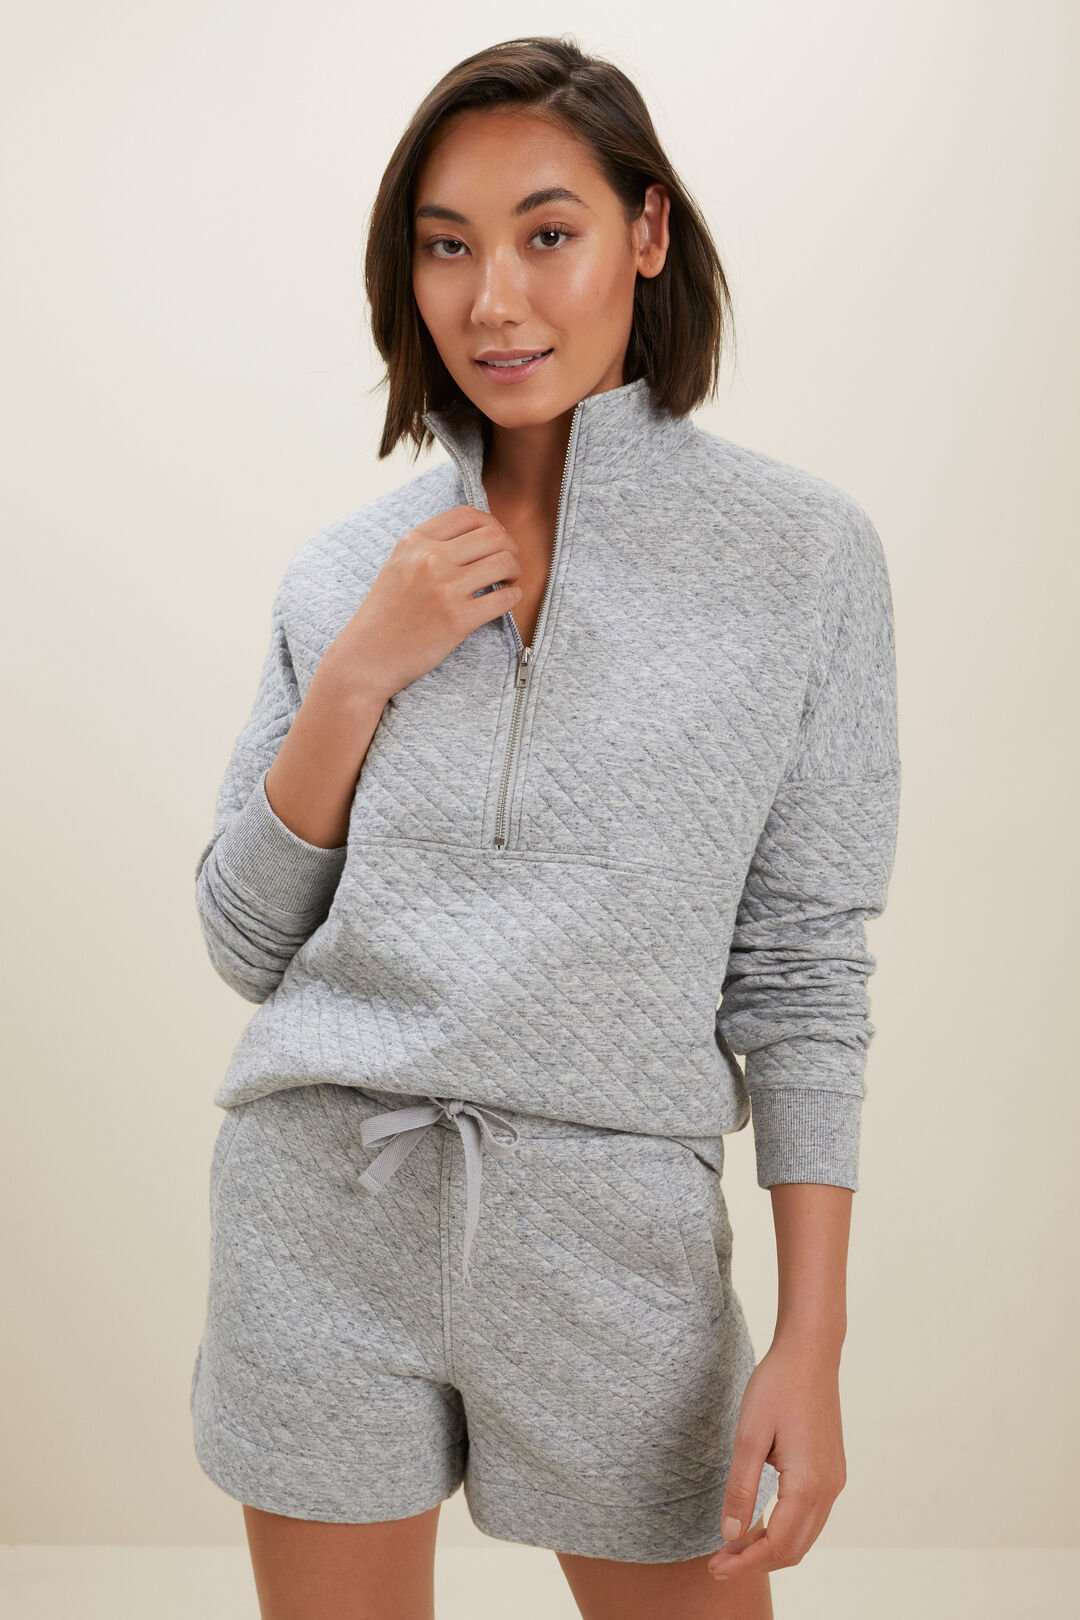 Diamond Quilted Sweater  STORMY GREY MARLE  hi-res